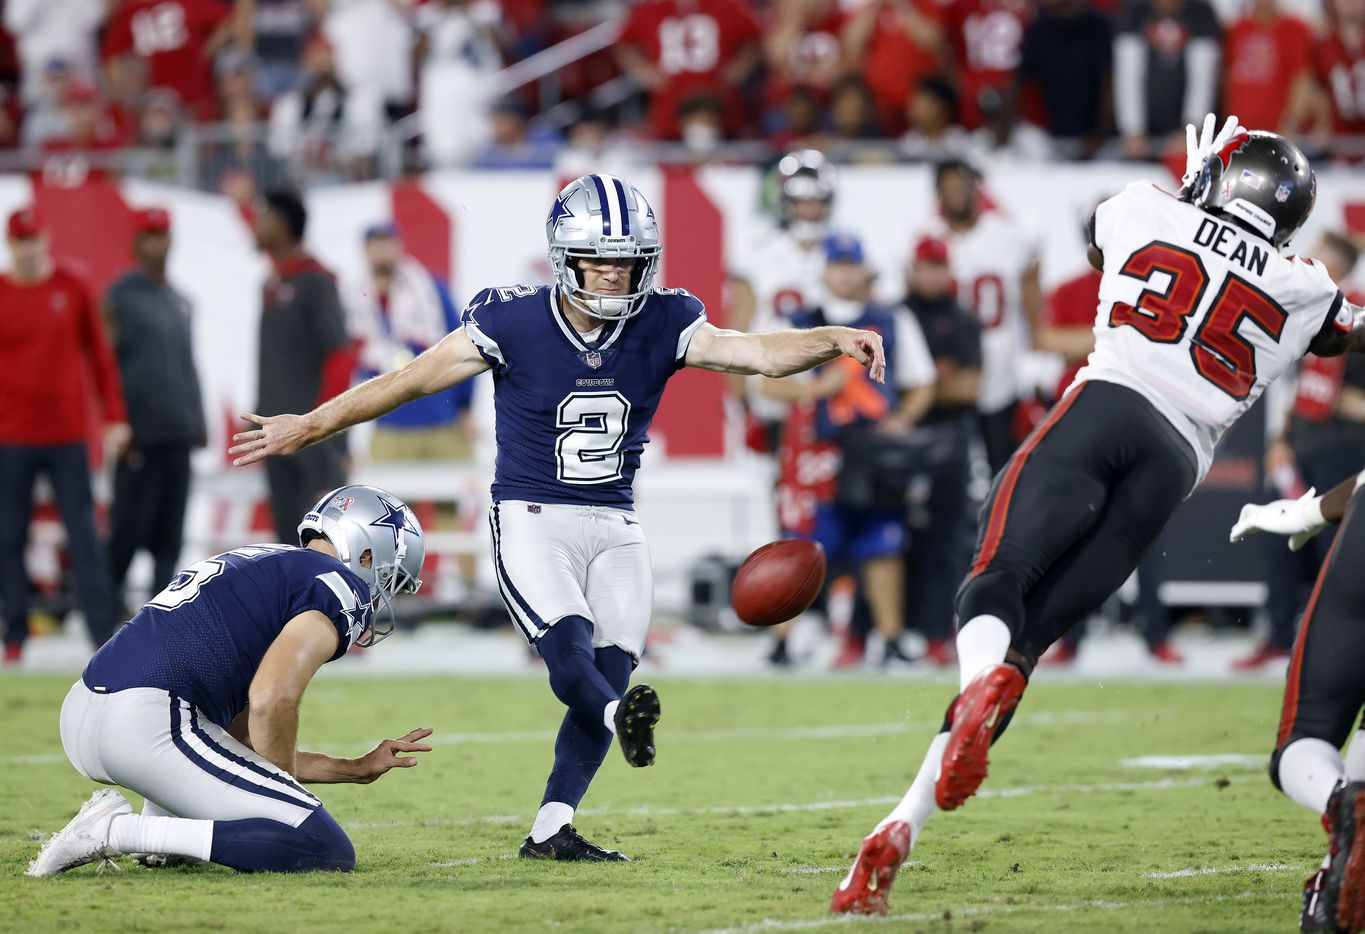 Dallas Cowboys place kicker Greg Zuerlein (2) kicks the go-ahead field late in the fourth quarter as Tampa Bay Buccaneers cornerback Jamel Dean (35) makes a diving block attempt at Raymond James Stadium in Tampa, Florida, Thursday, September 9, 2021. The Buccaneers would later kick the winning field goal to win the game. The Cowboys faced the Tampa Bay Buccaneers in the NFL season opener. (Tom Fox/The Dallas Morning News)